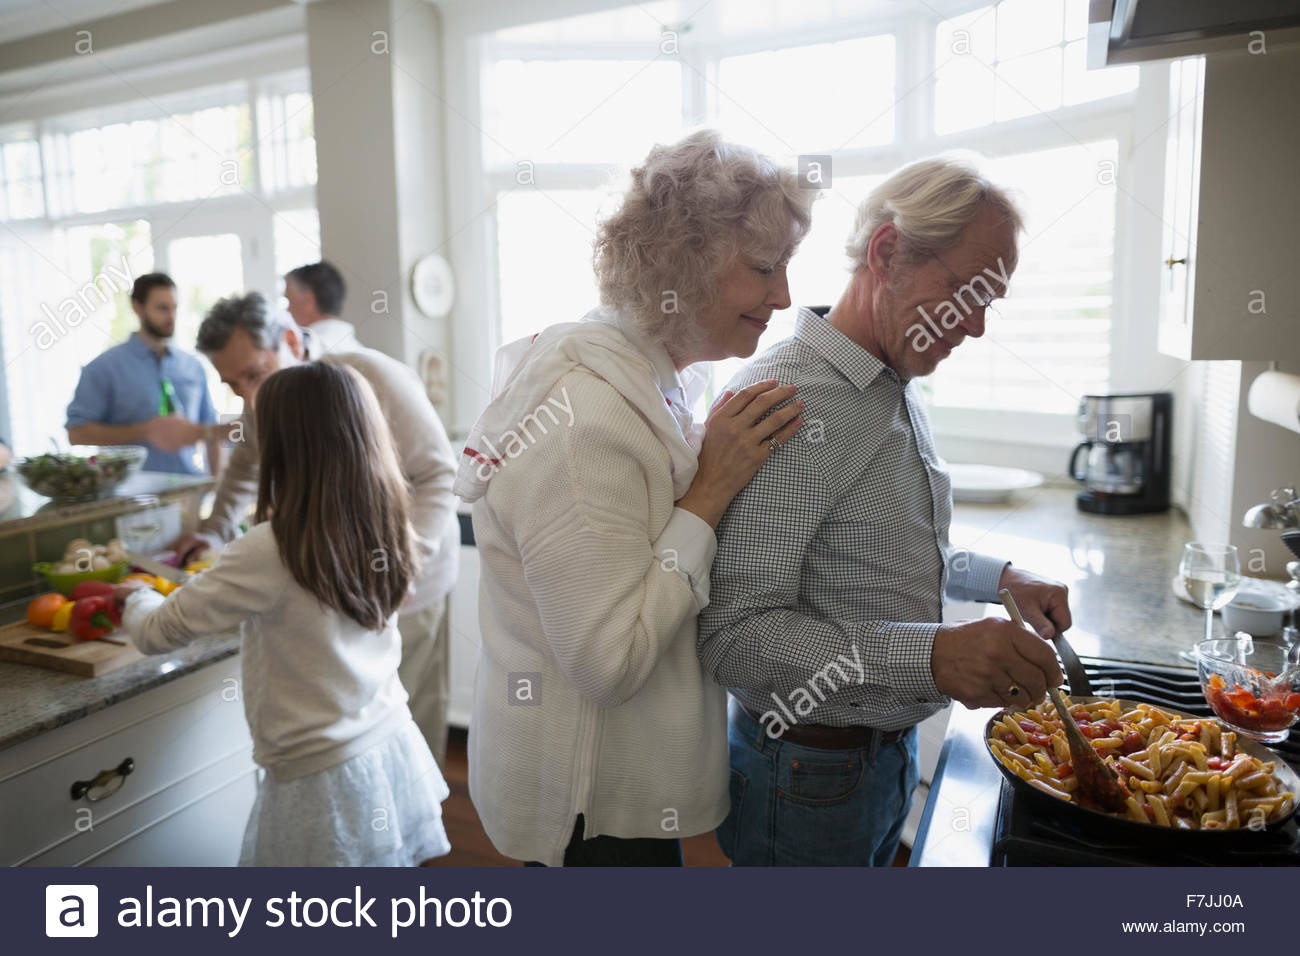 Senior couple cooking at kitchen stove - Stock Image